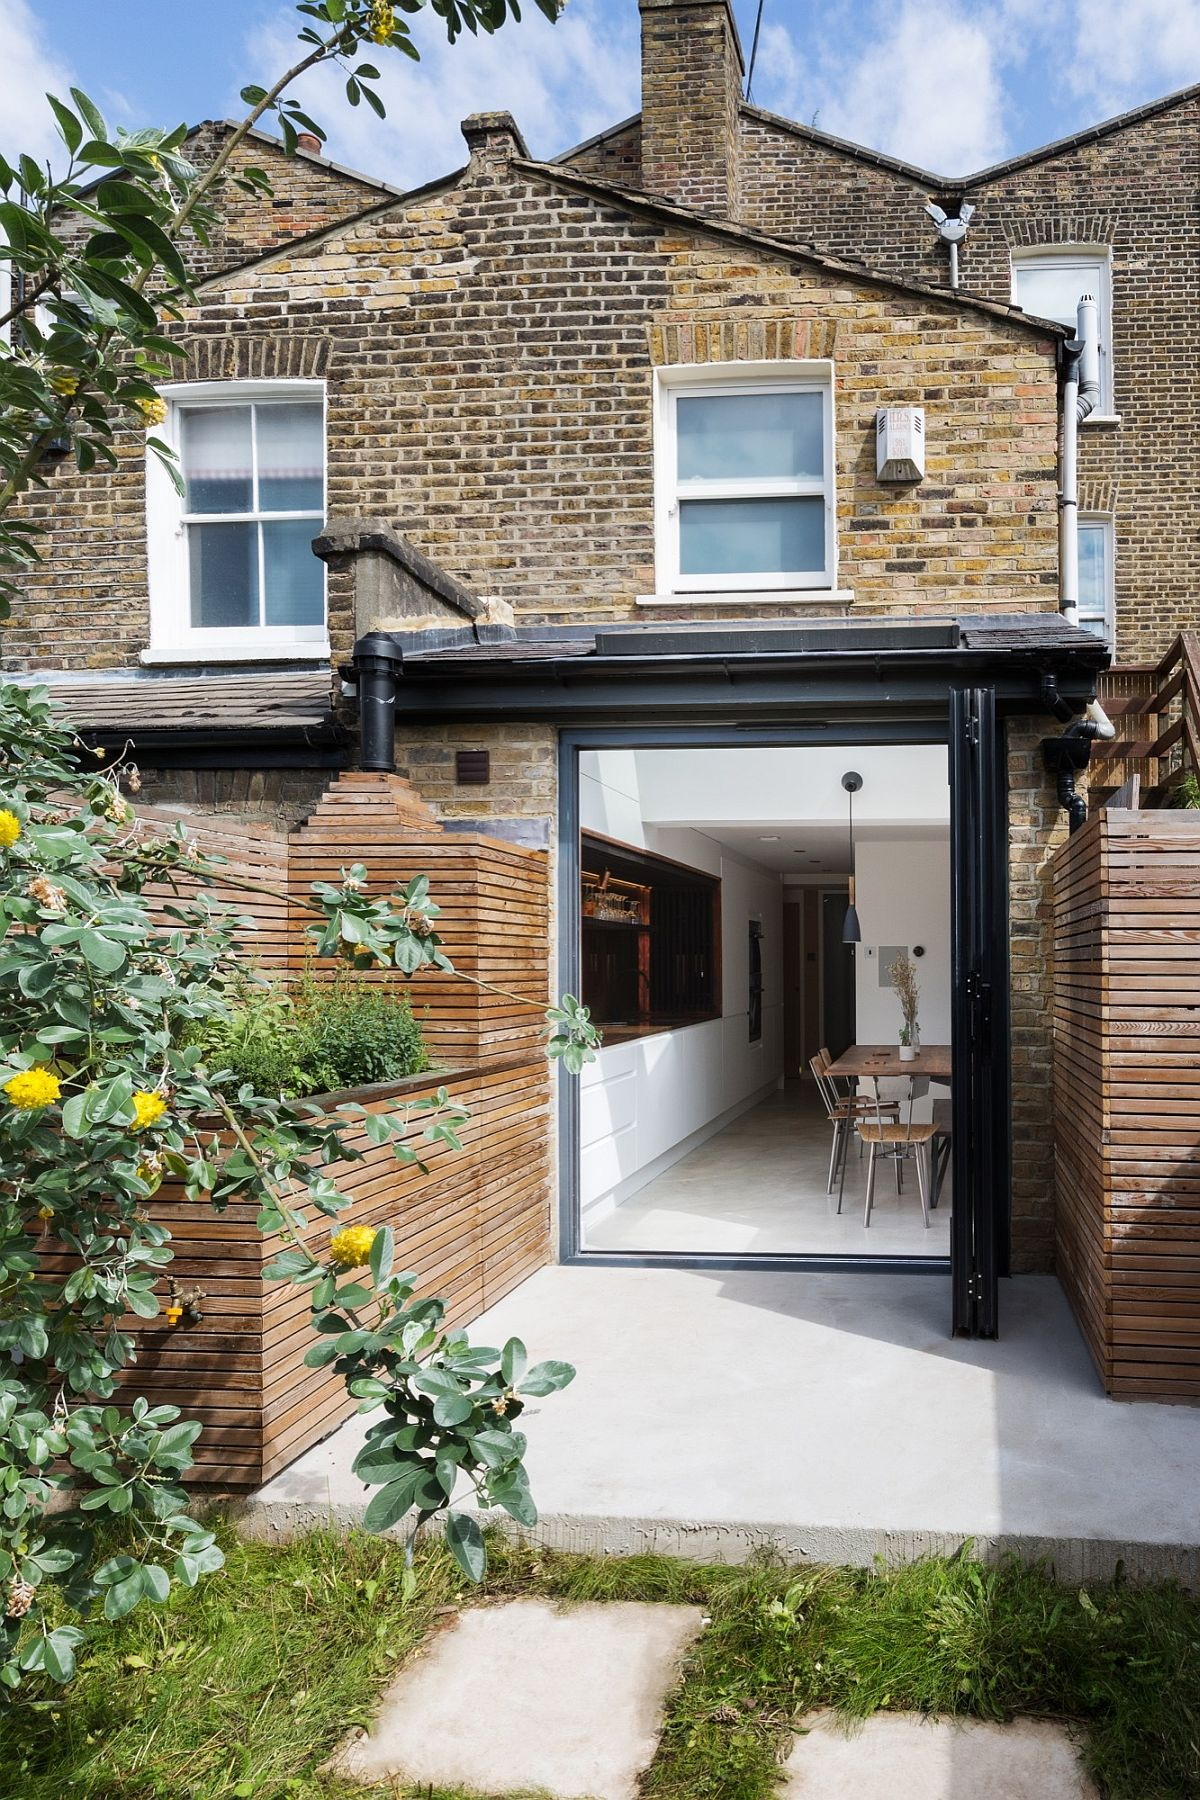 New kitchen dining and sunken bath of the London home extend into the garden outside An Indulgent Dip: This Terraced London Home Gets a Stunning Sunken Bath